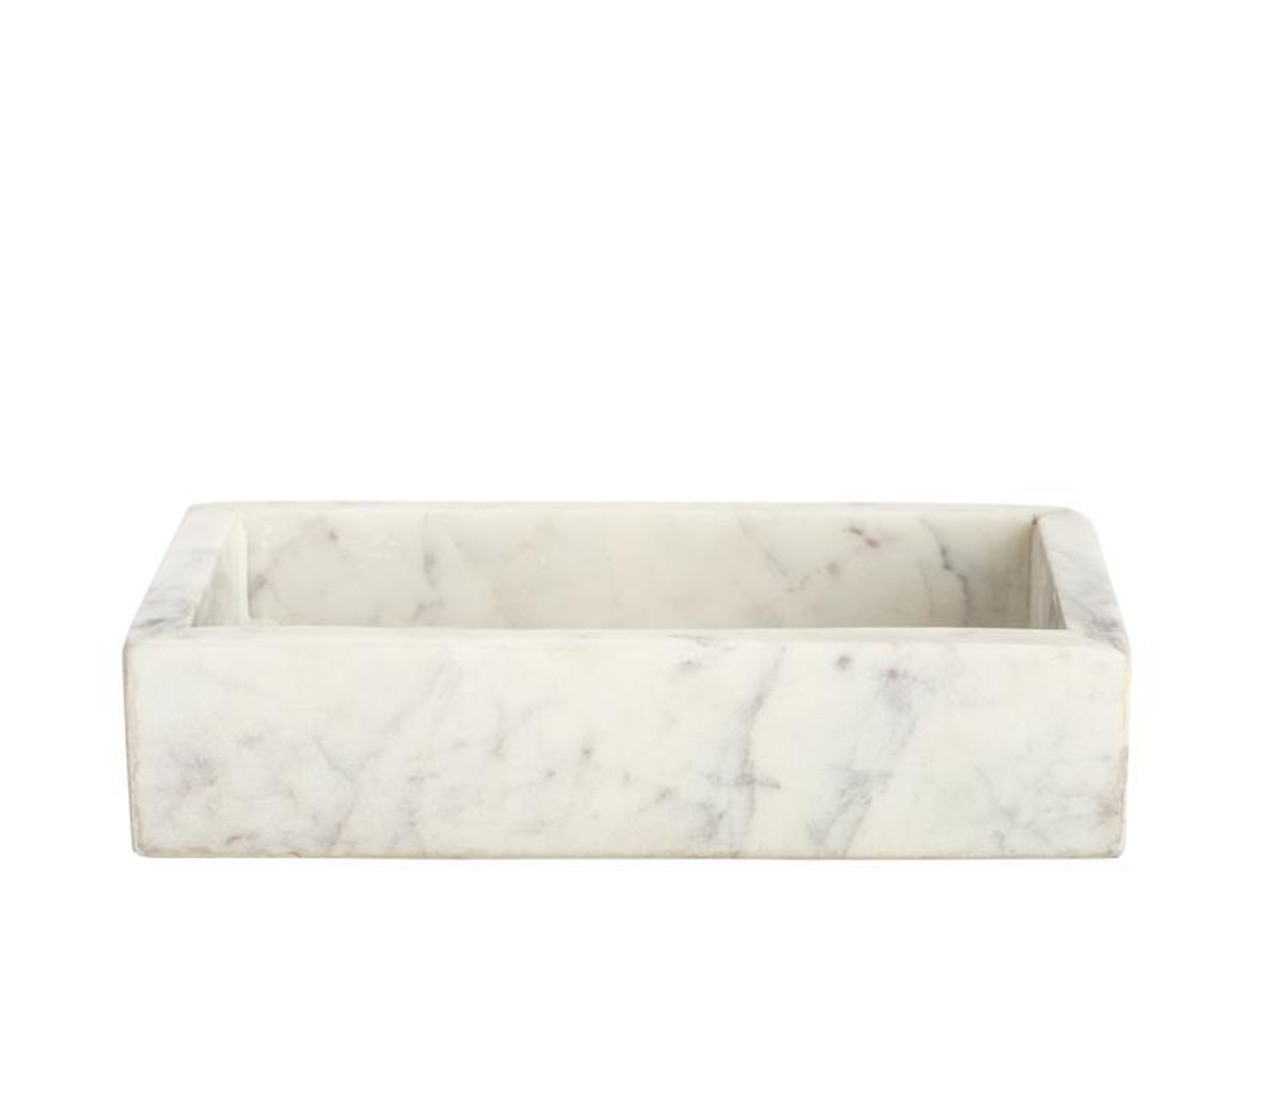 BELLE DE PROVENCE - MARBLE TRAY - SMALL